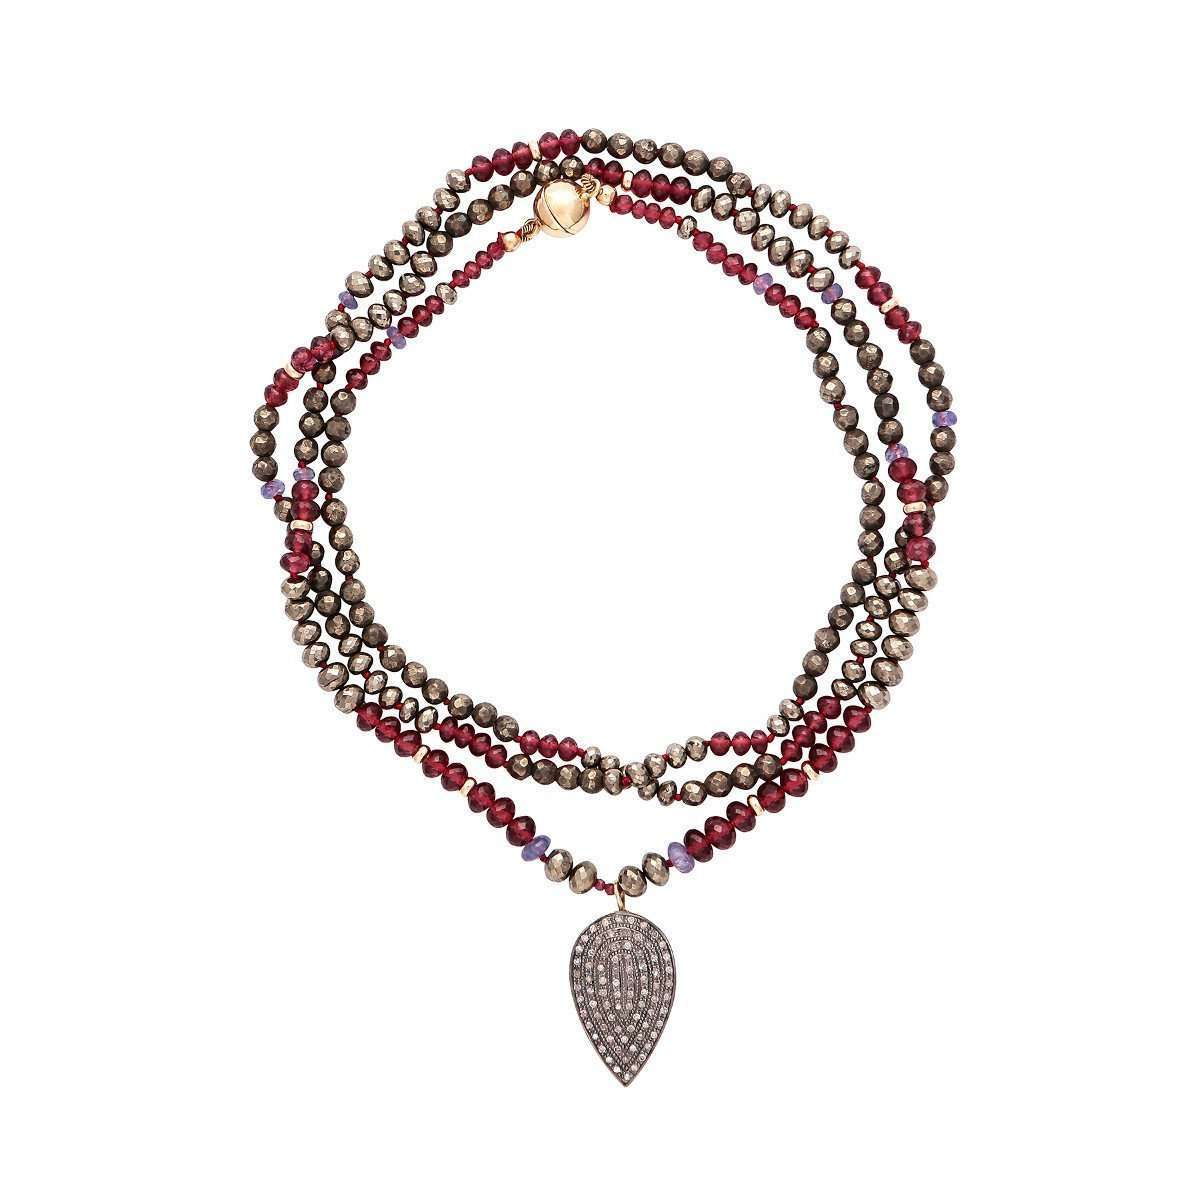 Garnet And Pyrite Necklace With Diamond Pendant-Plumeria Exclusive London-JewelStreet US